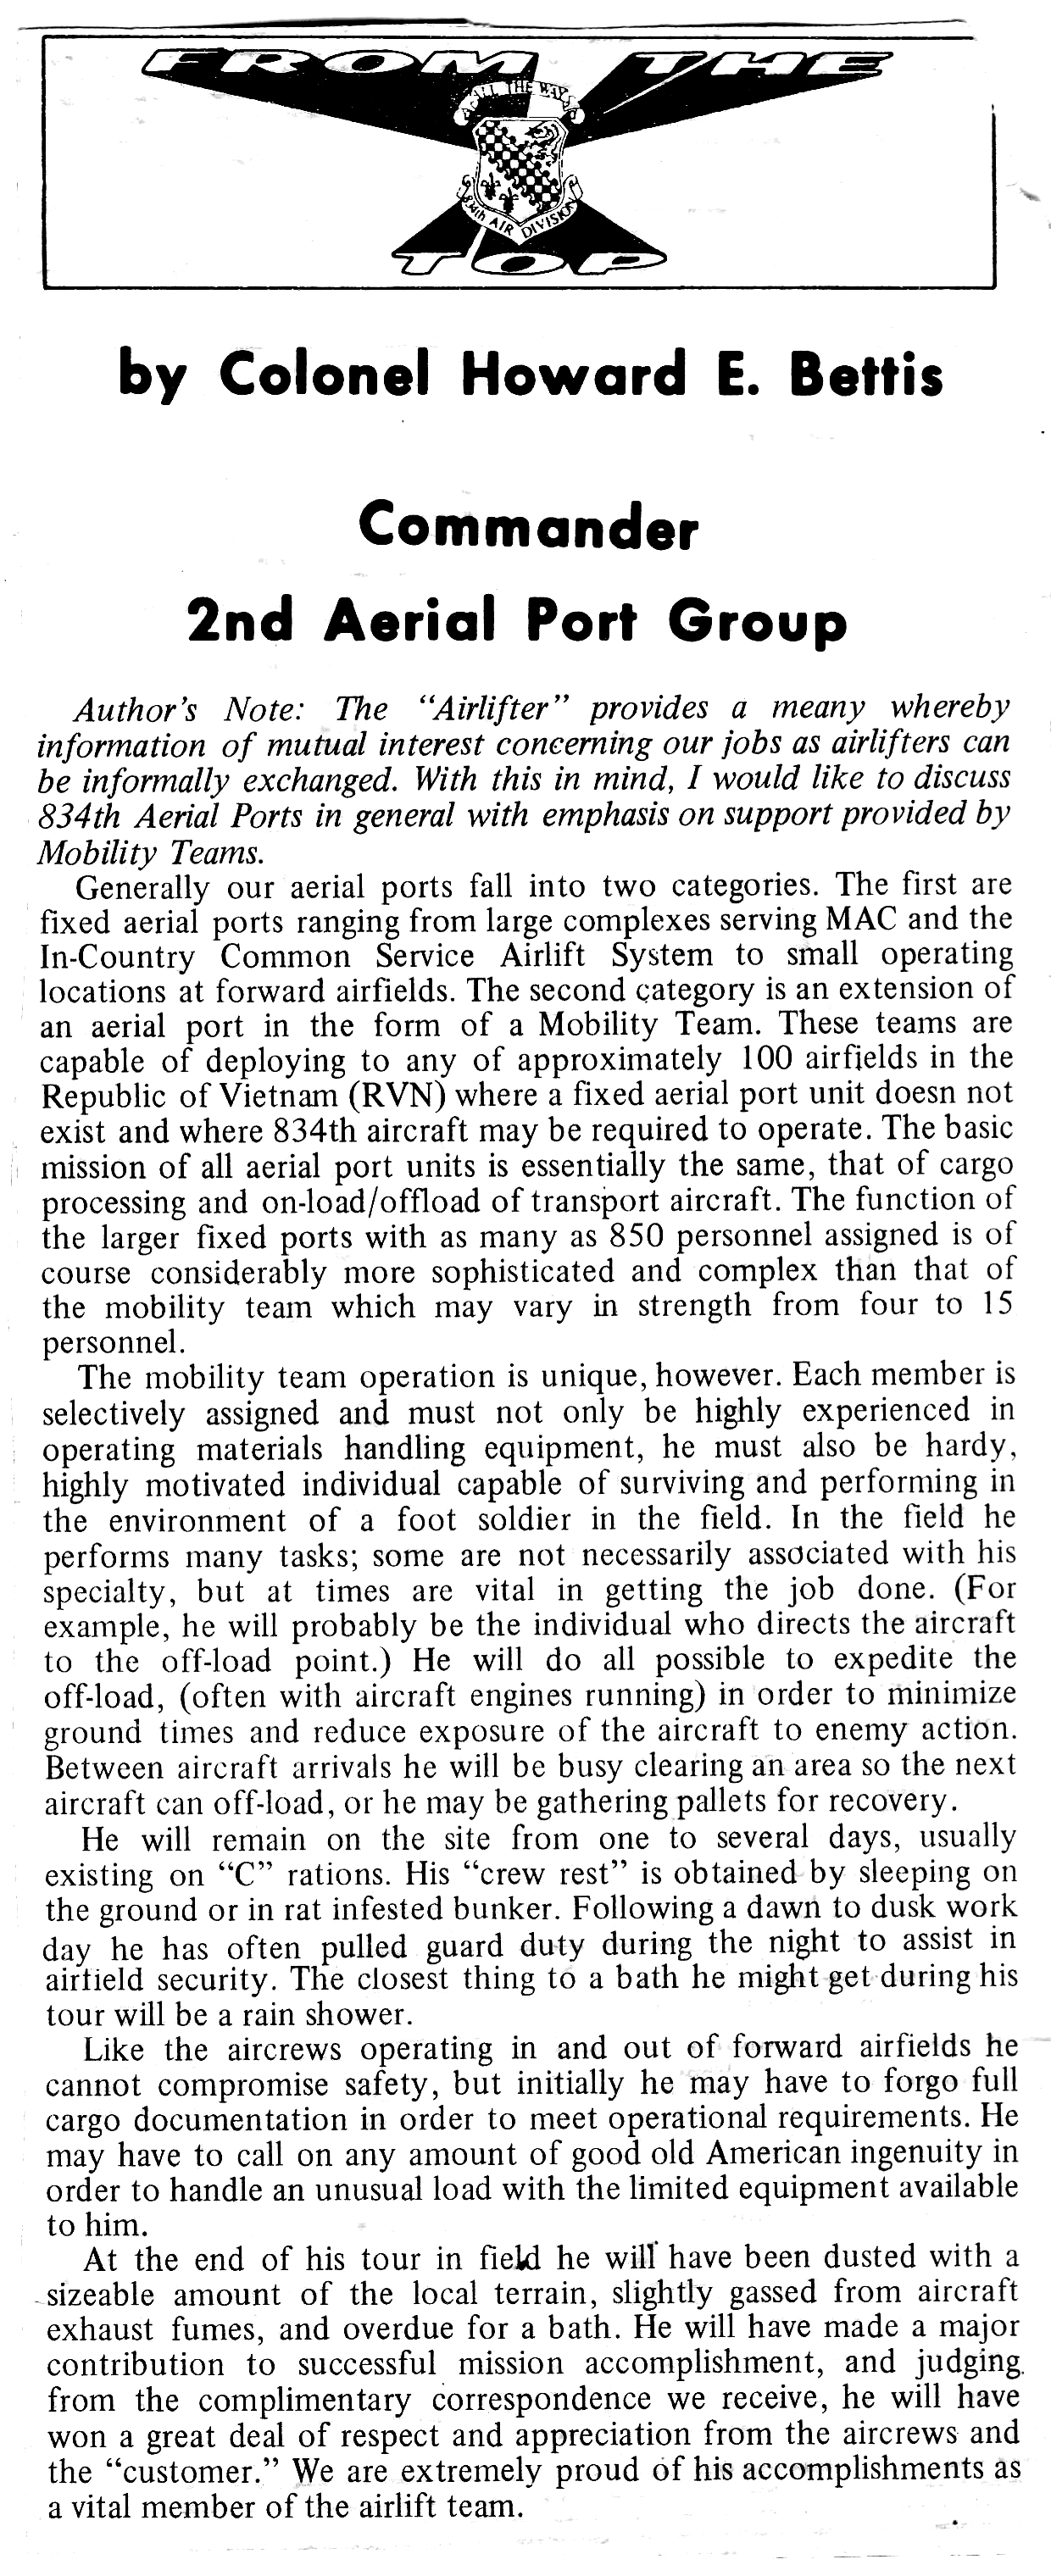 Col. Bettis